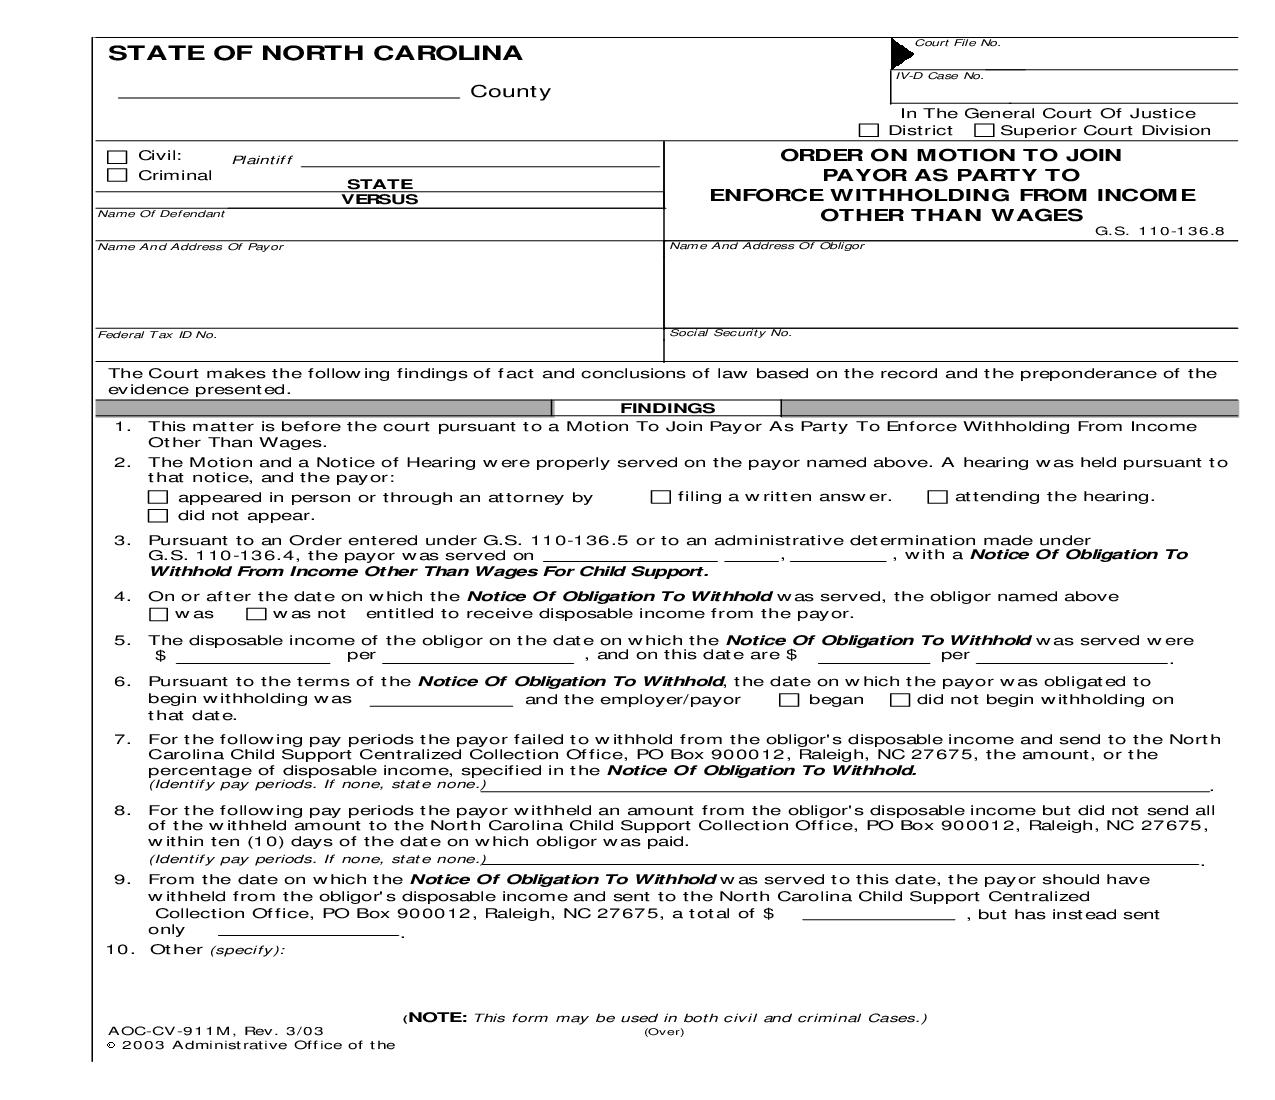 Order On Motion To Join Payor As Party To Enforce Income Withholding {CV-911M} | Pdf Fpdf Doc Docx | North Carolina